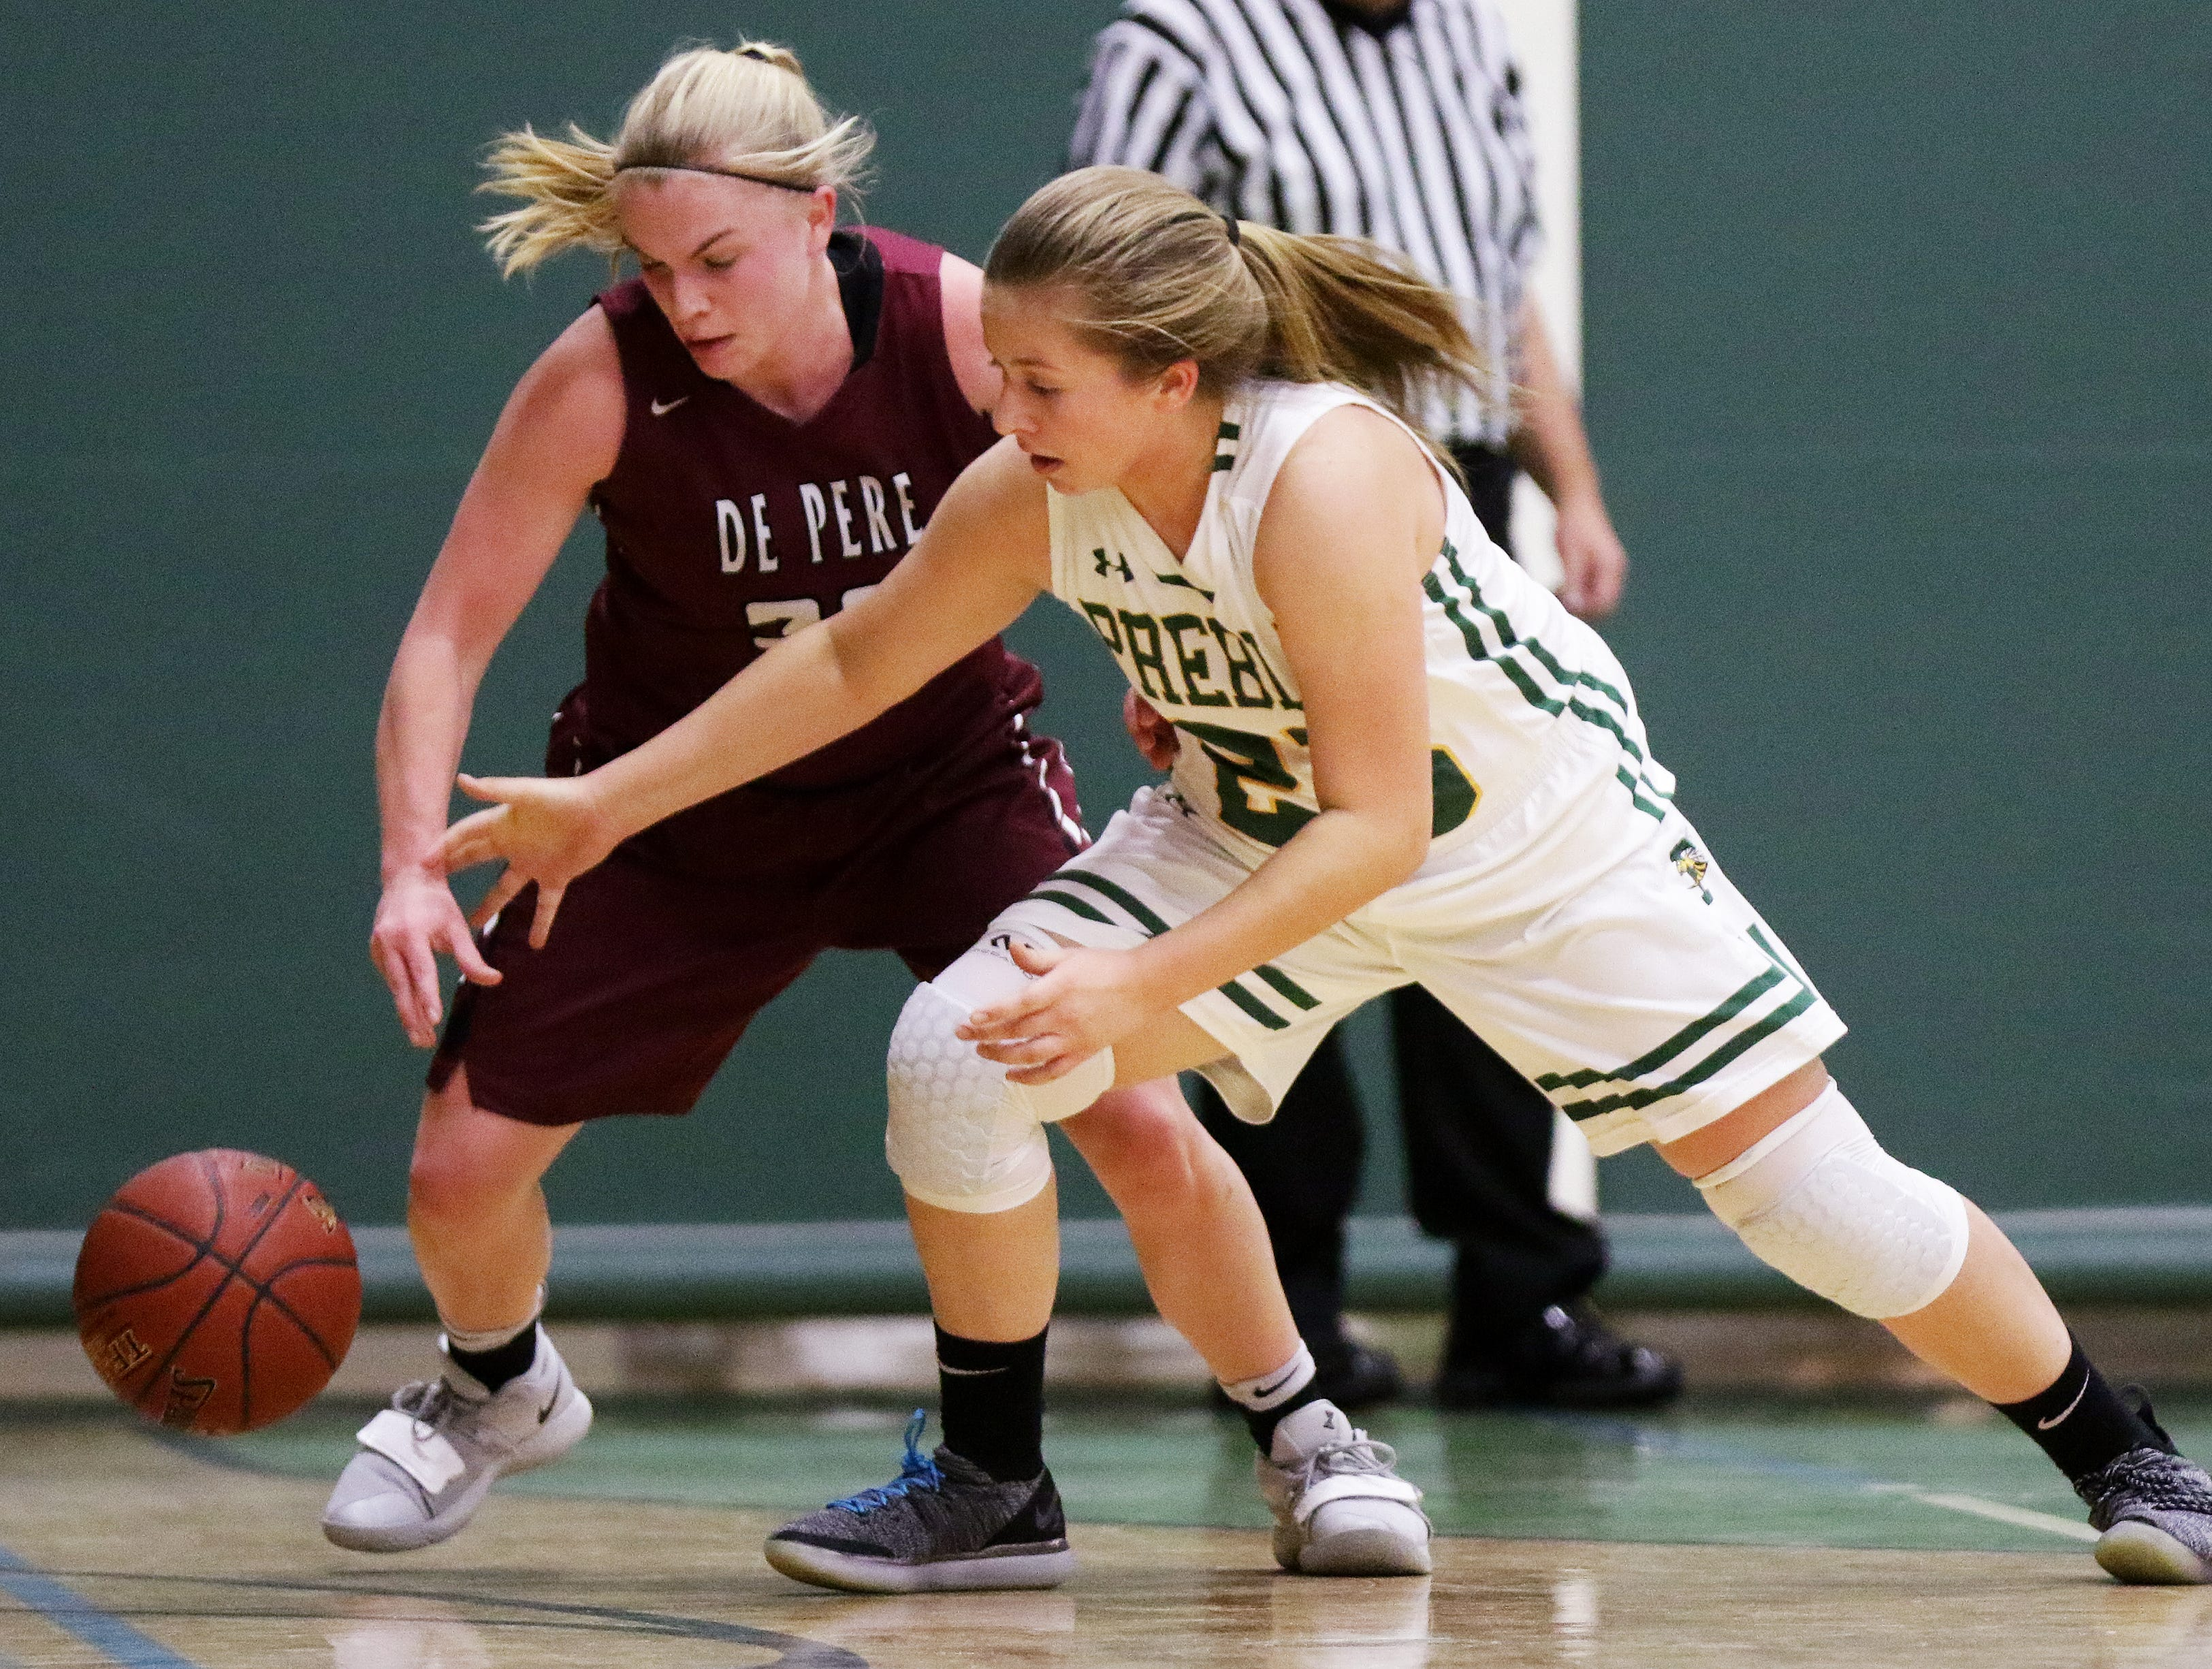 De Pere's Rachel Kerkhoff (30) steals the ball from Green Bay Preble's Carley Thiry (23) in a girls basketball game at Preble high school on Tuesday, January 8, 2019 in Green Bay, Wis.